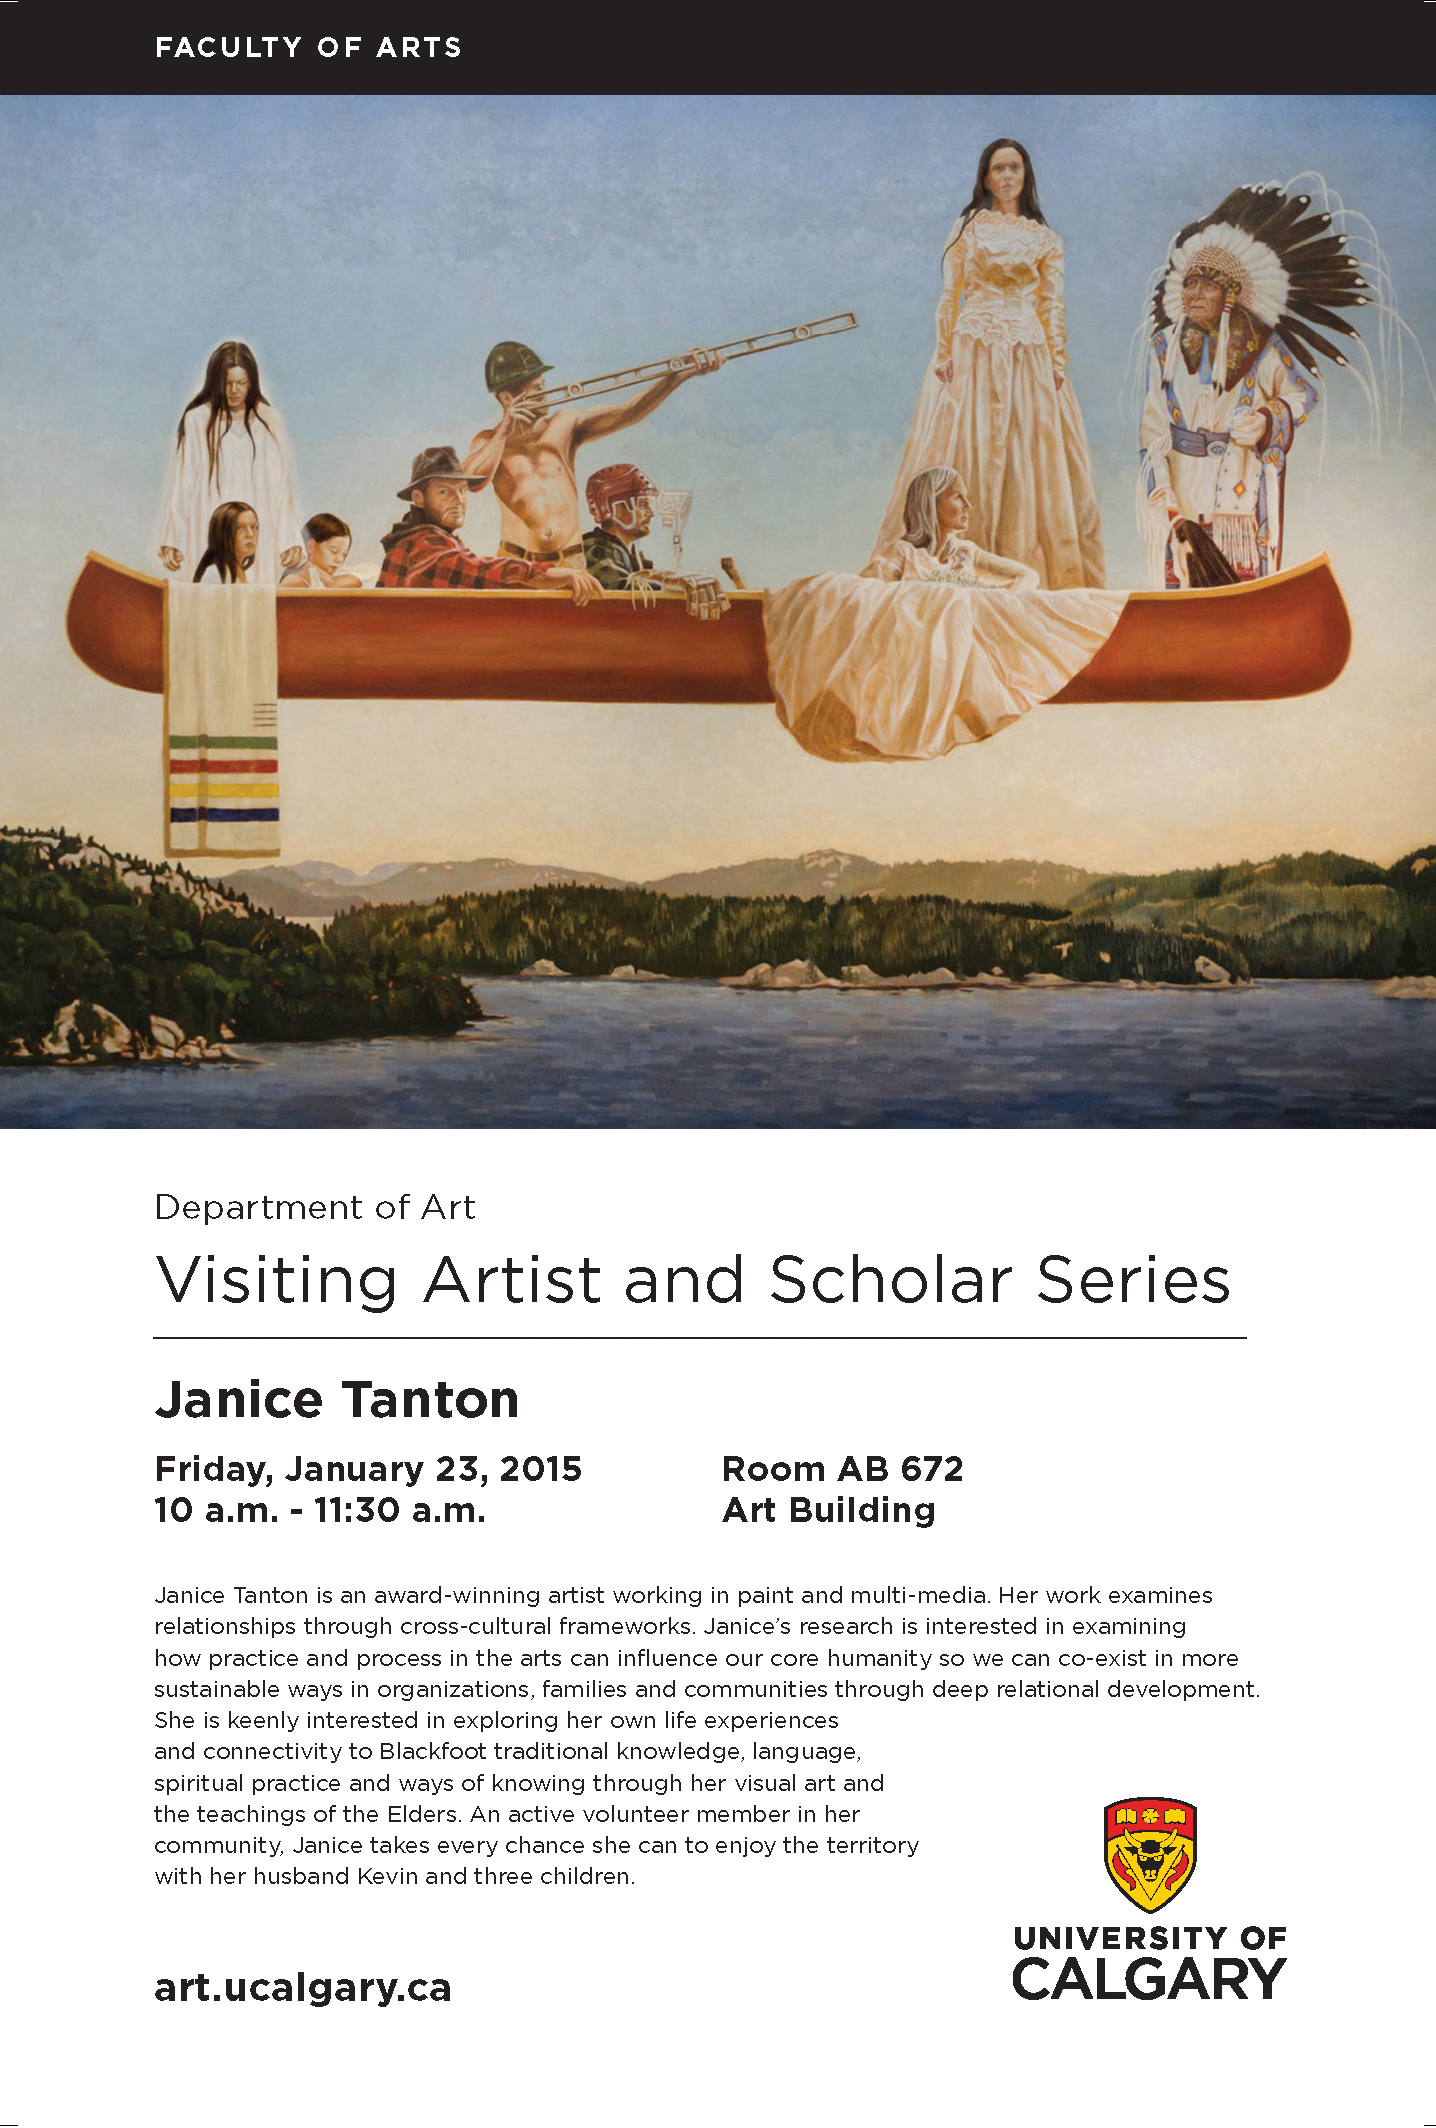 Join me for an Artist Talk as the Visiting Artist and Scholar, Friday, January 23rd at the University of Calgary, Calgary, AB